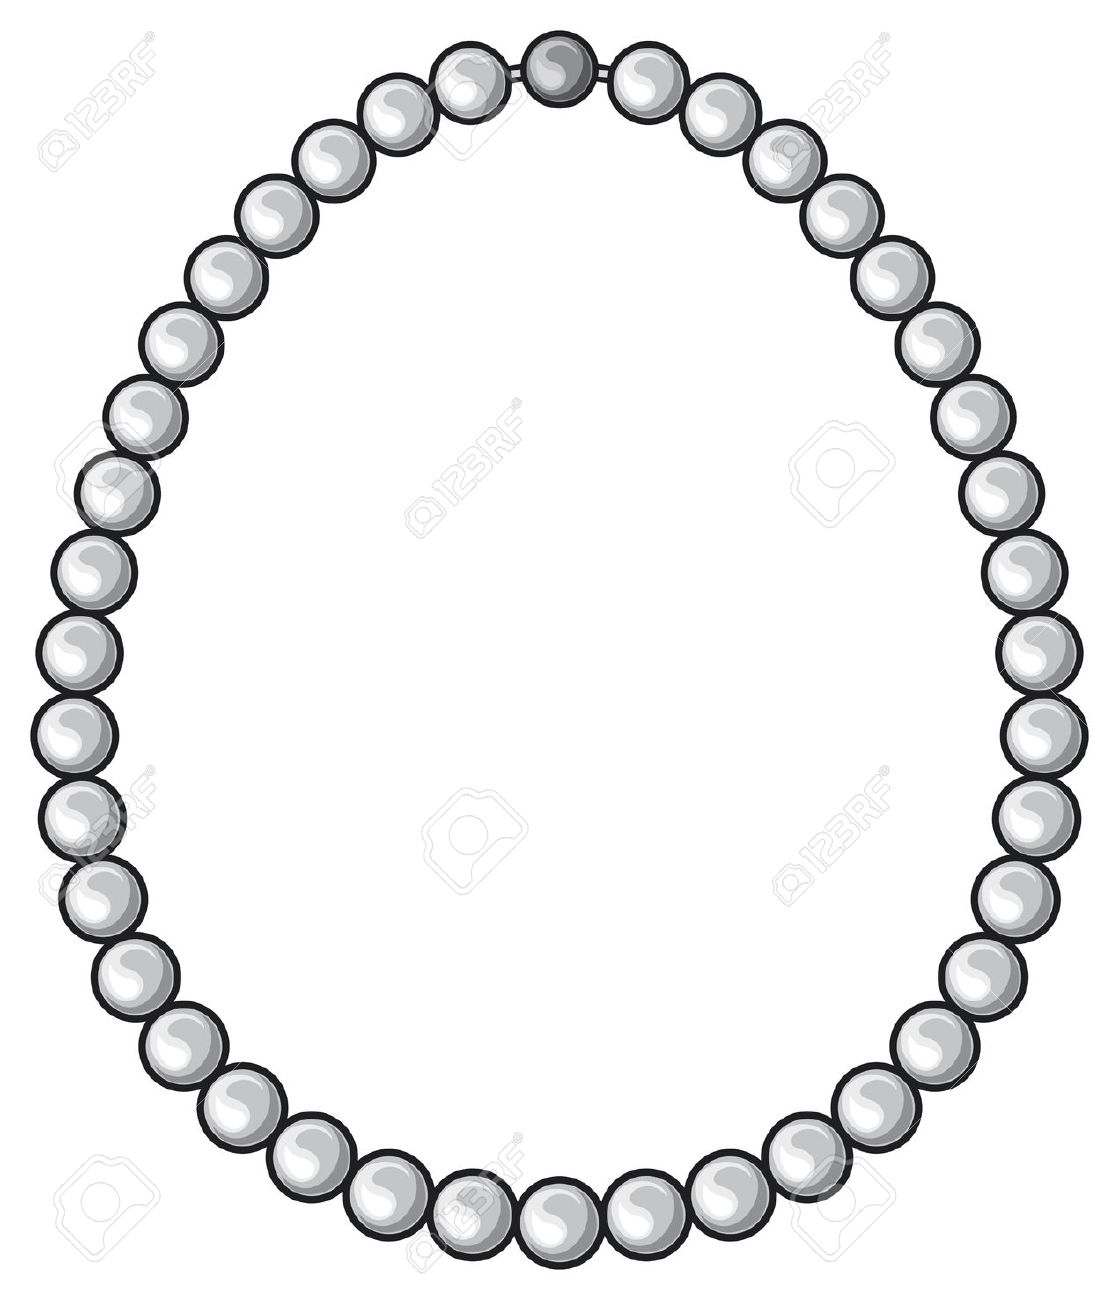 Pearl Necklace Silhouette At Getdrawings